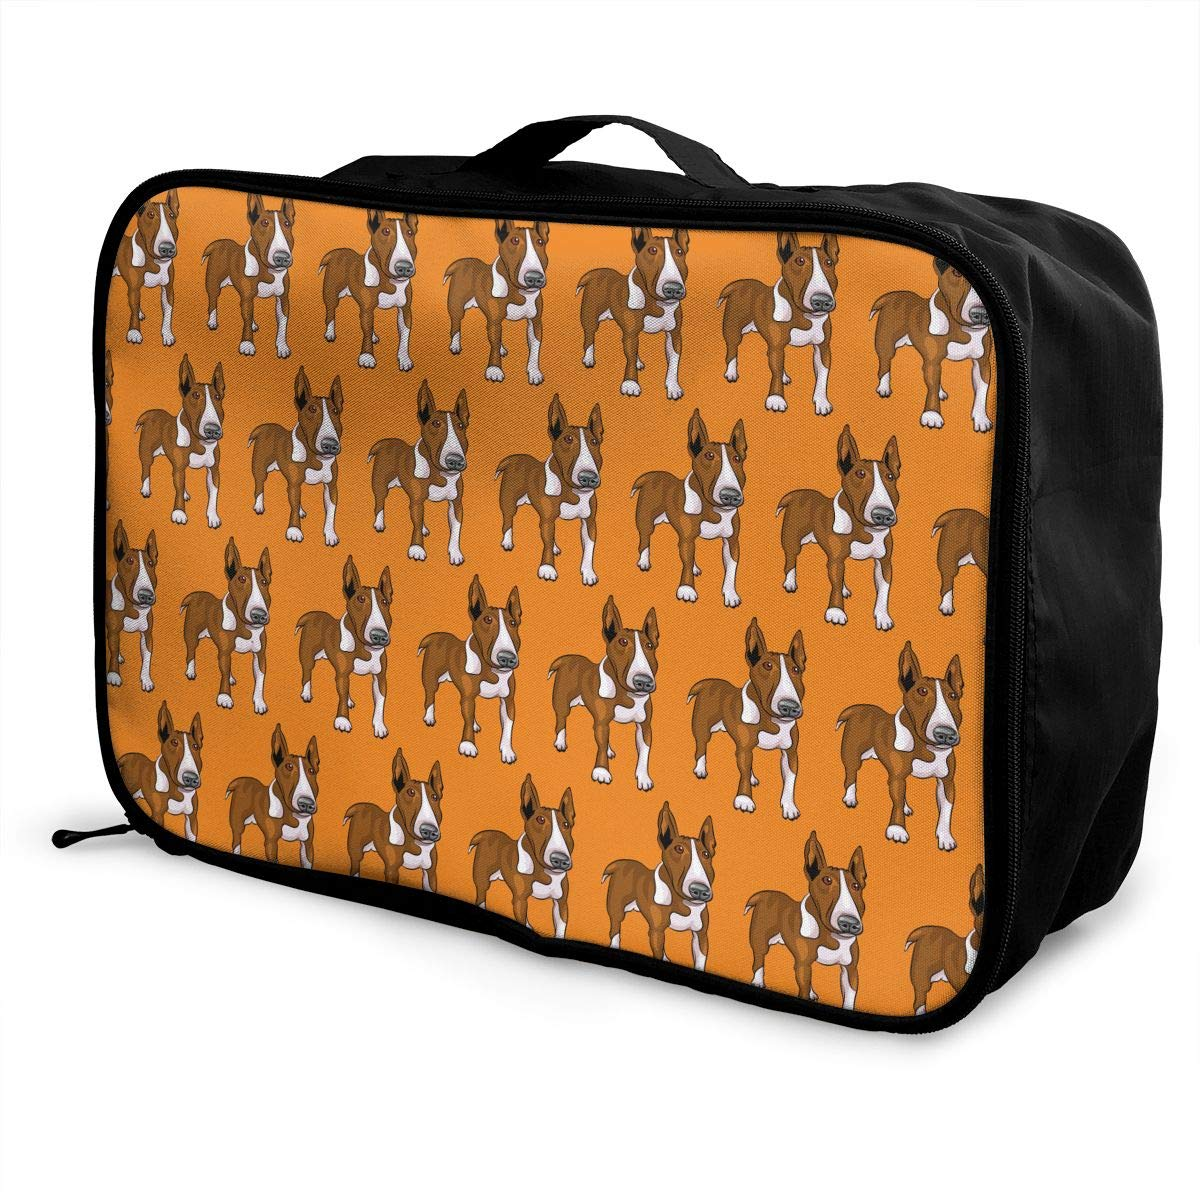 YueLJB Bull Terrier Dog Pattern Lightweight Large Capacity Portable Luggage Bag Travel Duffel Bag Storage Carry Luggage Duffle Tote Bag